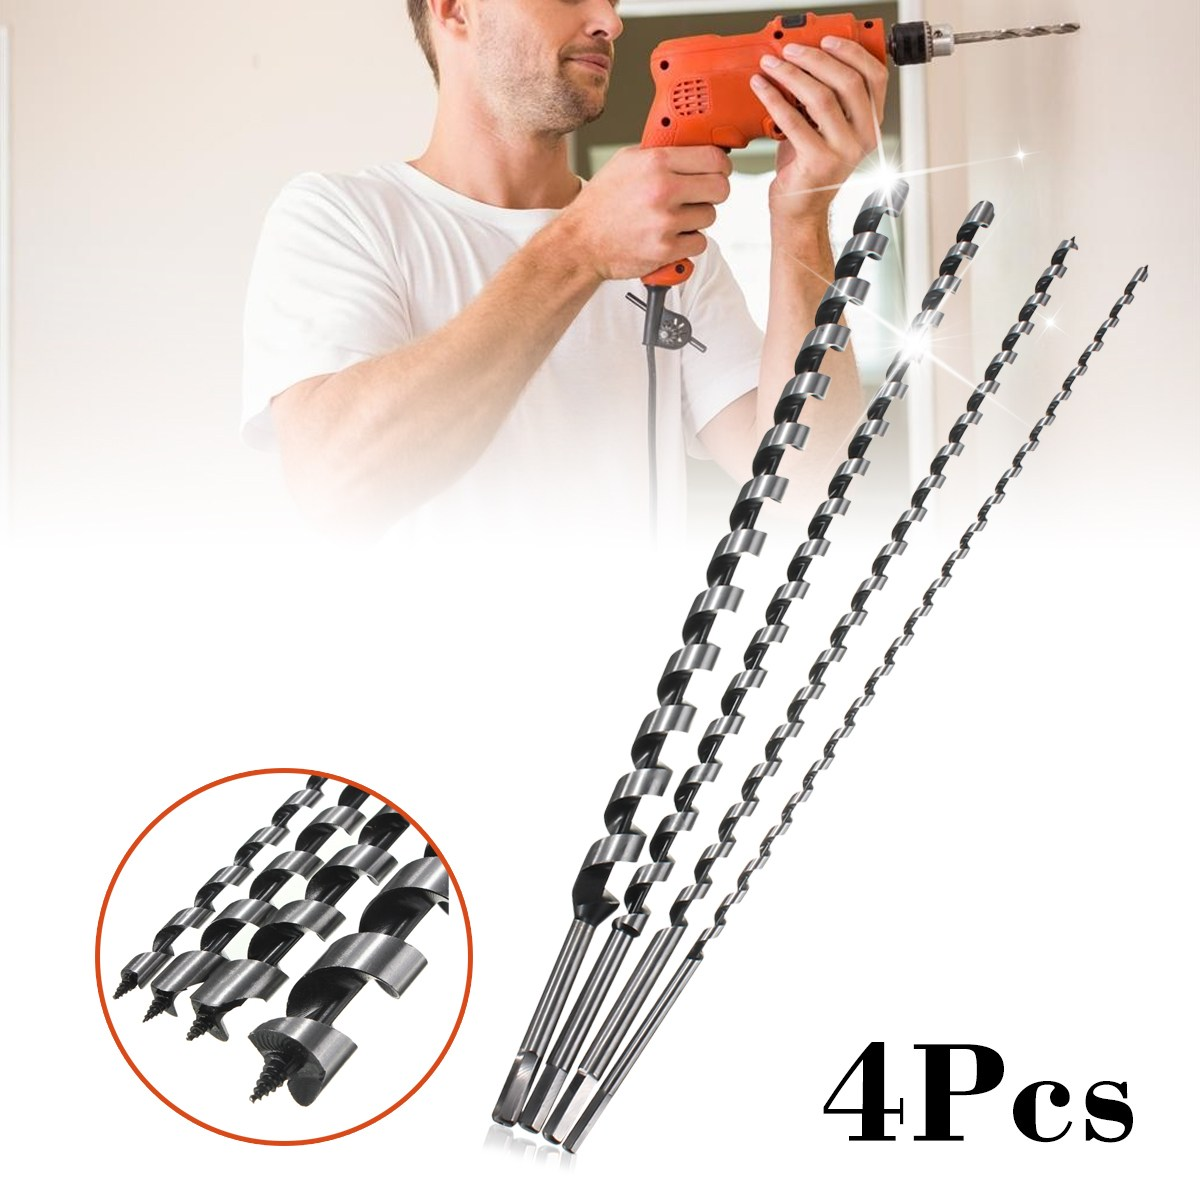 4PC Long Wood Auger Bits 600MM Long Wood Auger Set Drill Bit